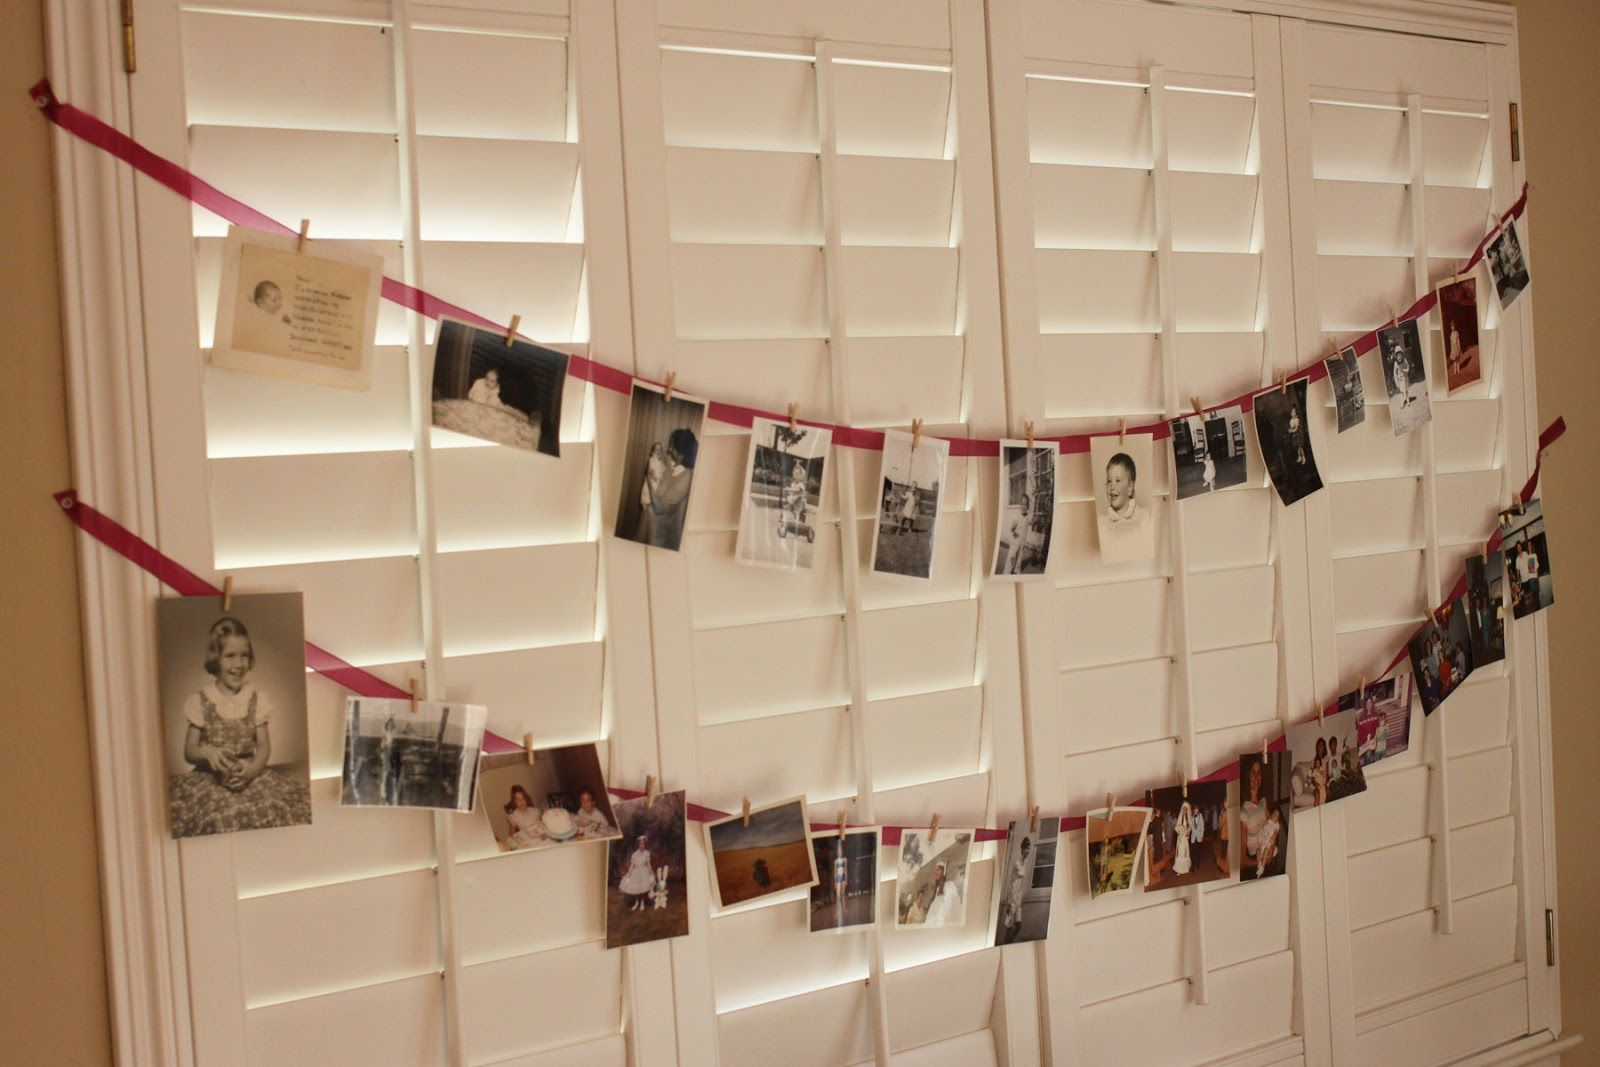 Th Birthday Party Decoration Ideas For Men Decorations Just Made Bunting Of Photos From My Mom